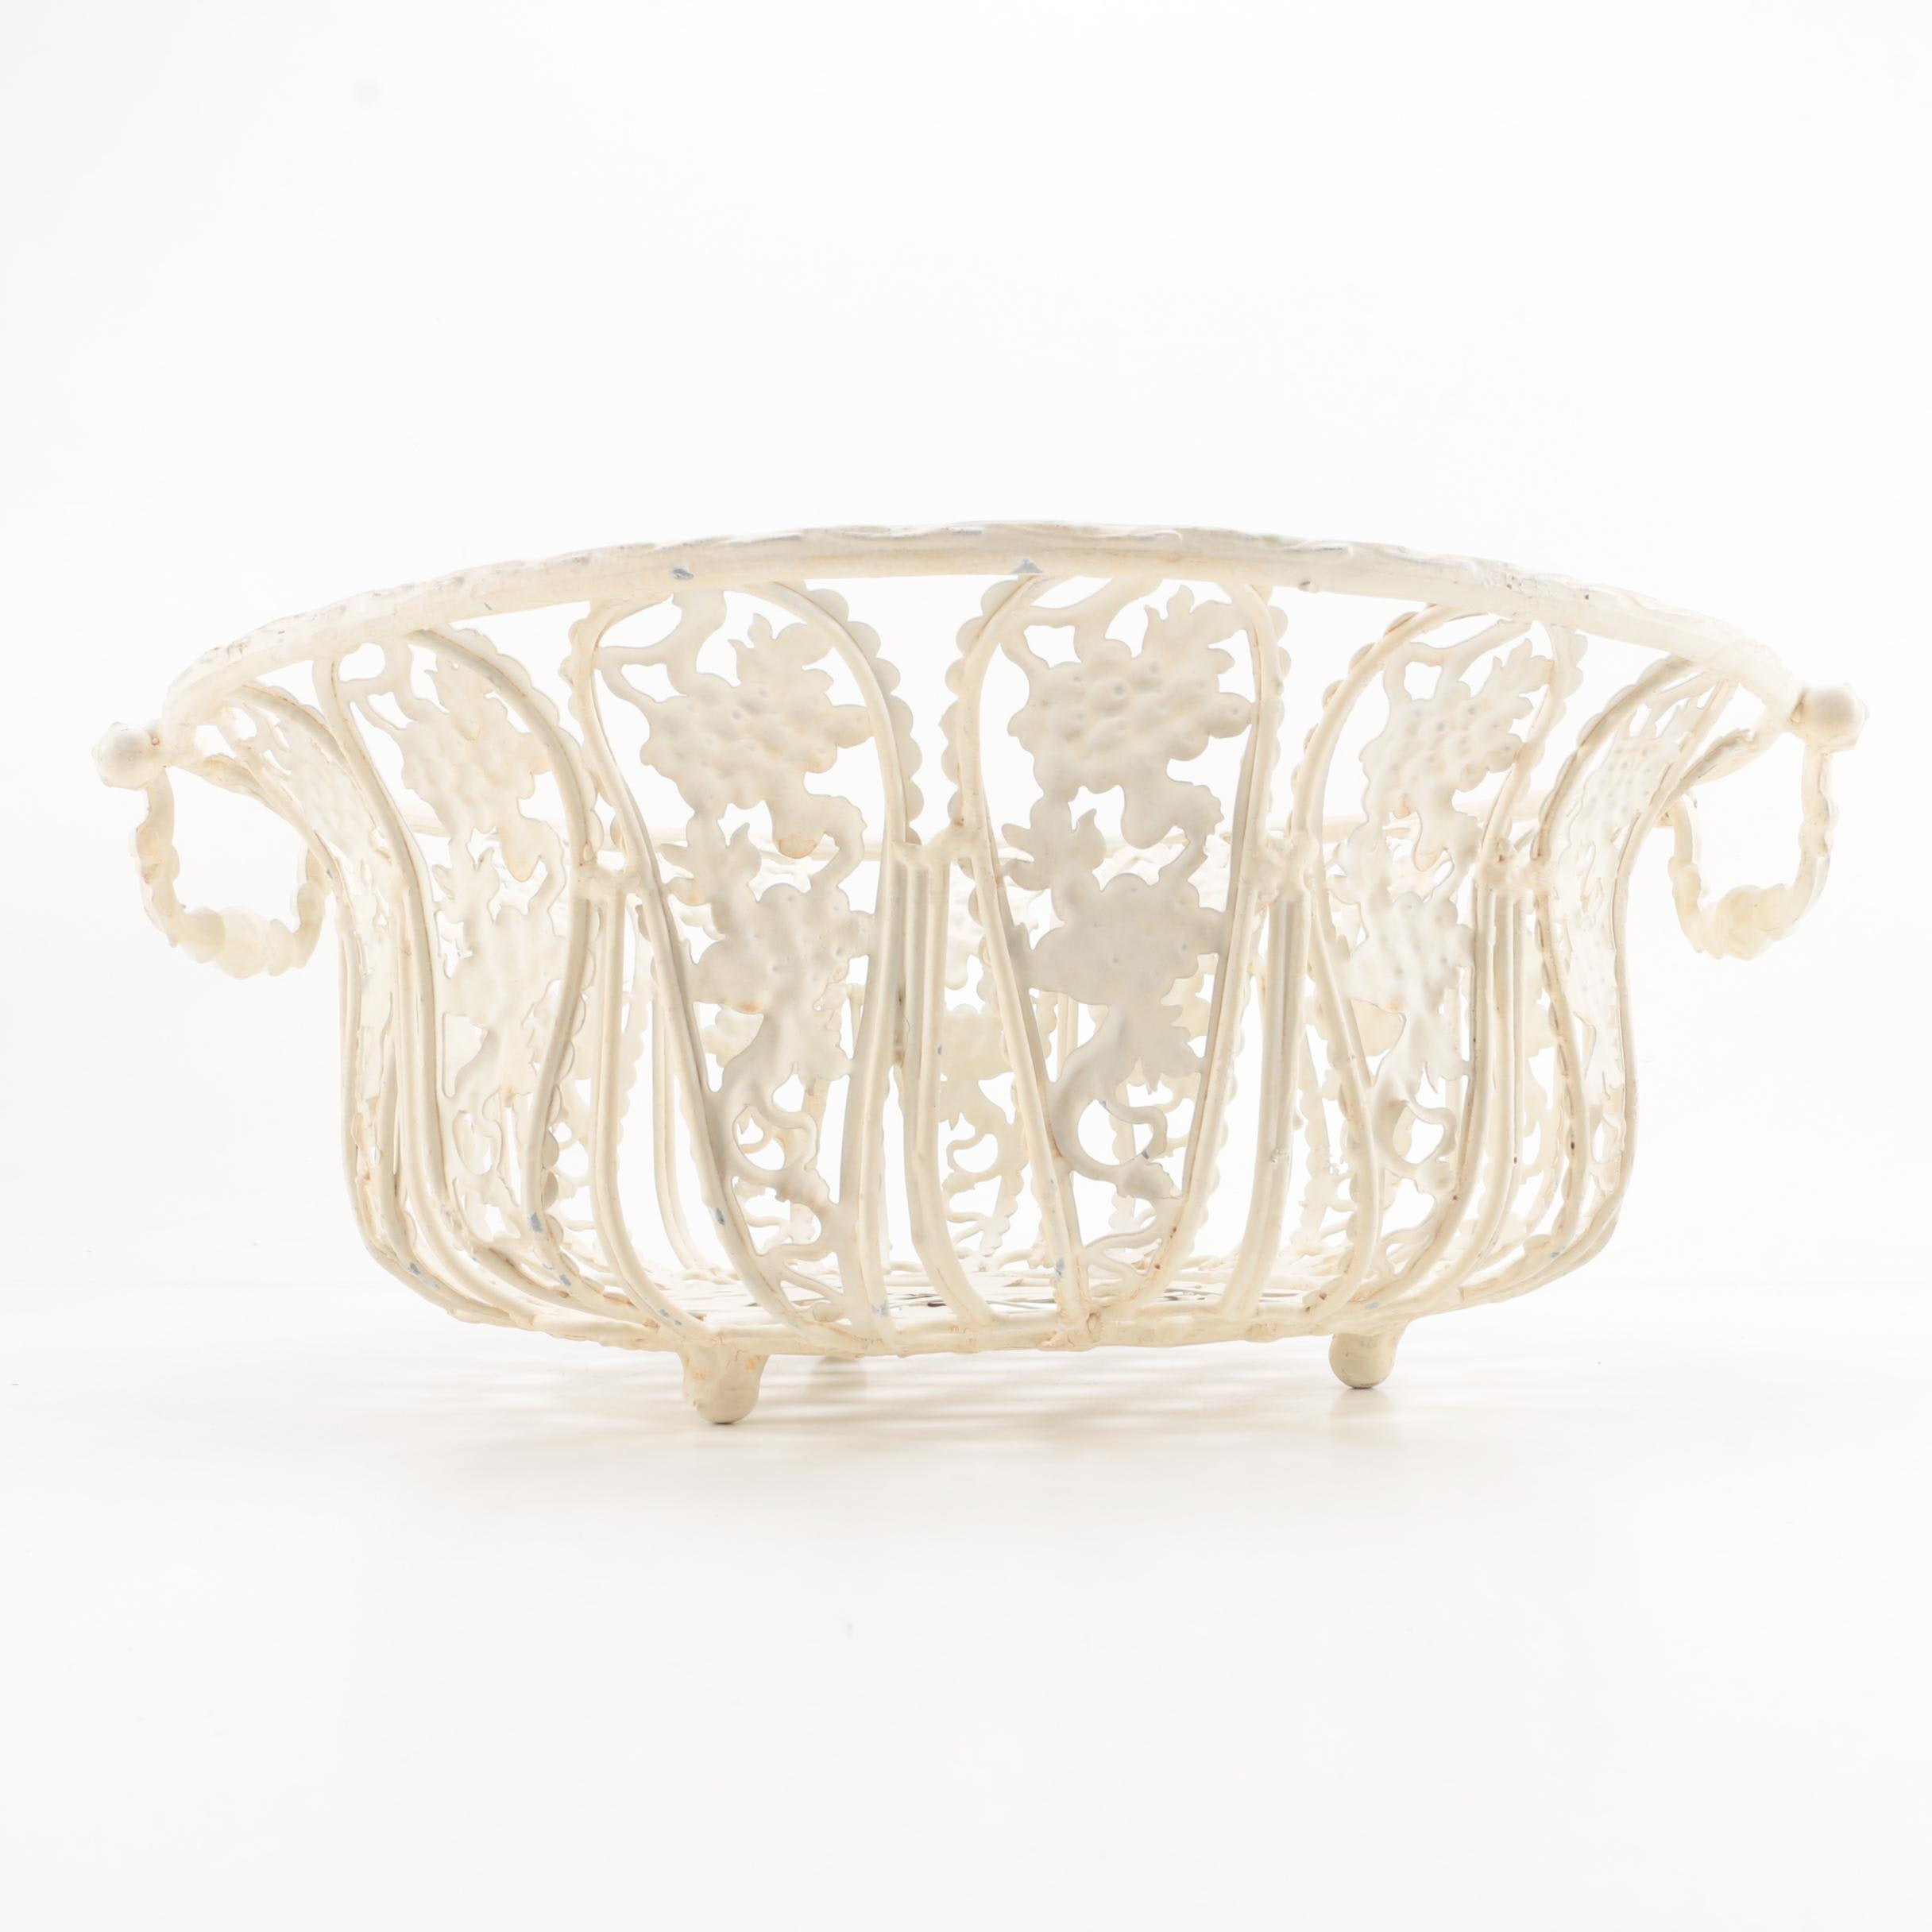 Decorative White Metal Basket